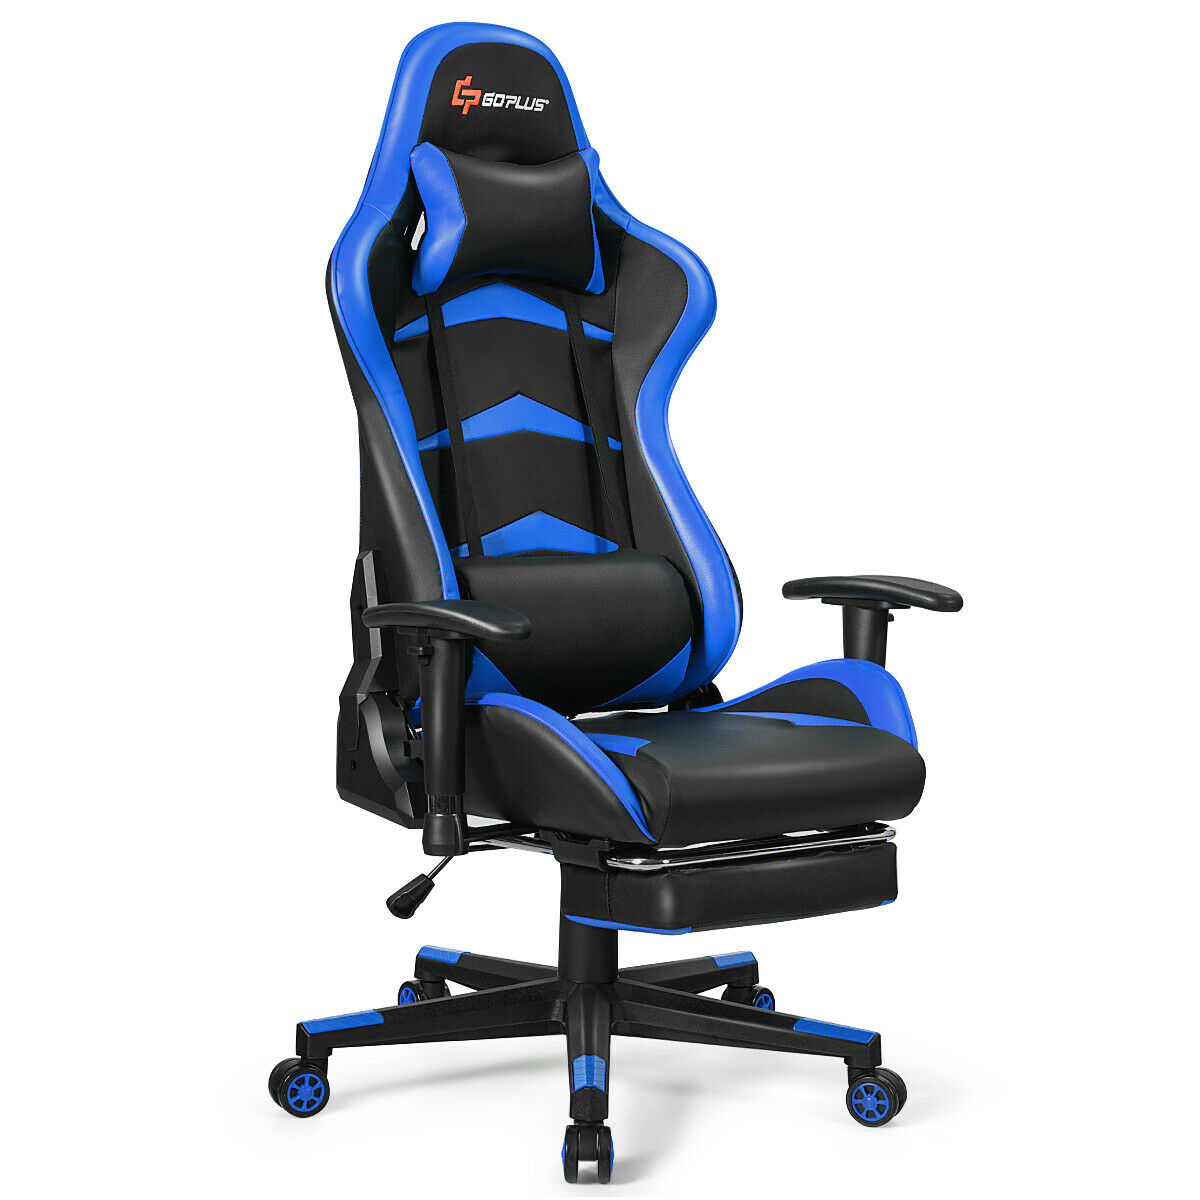 Price 209 59 Massage Gaming Chair Reclining Racing Office Chair W Lumbar Support Gaming Chair Lumbar Support Racing Chair